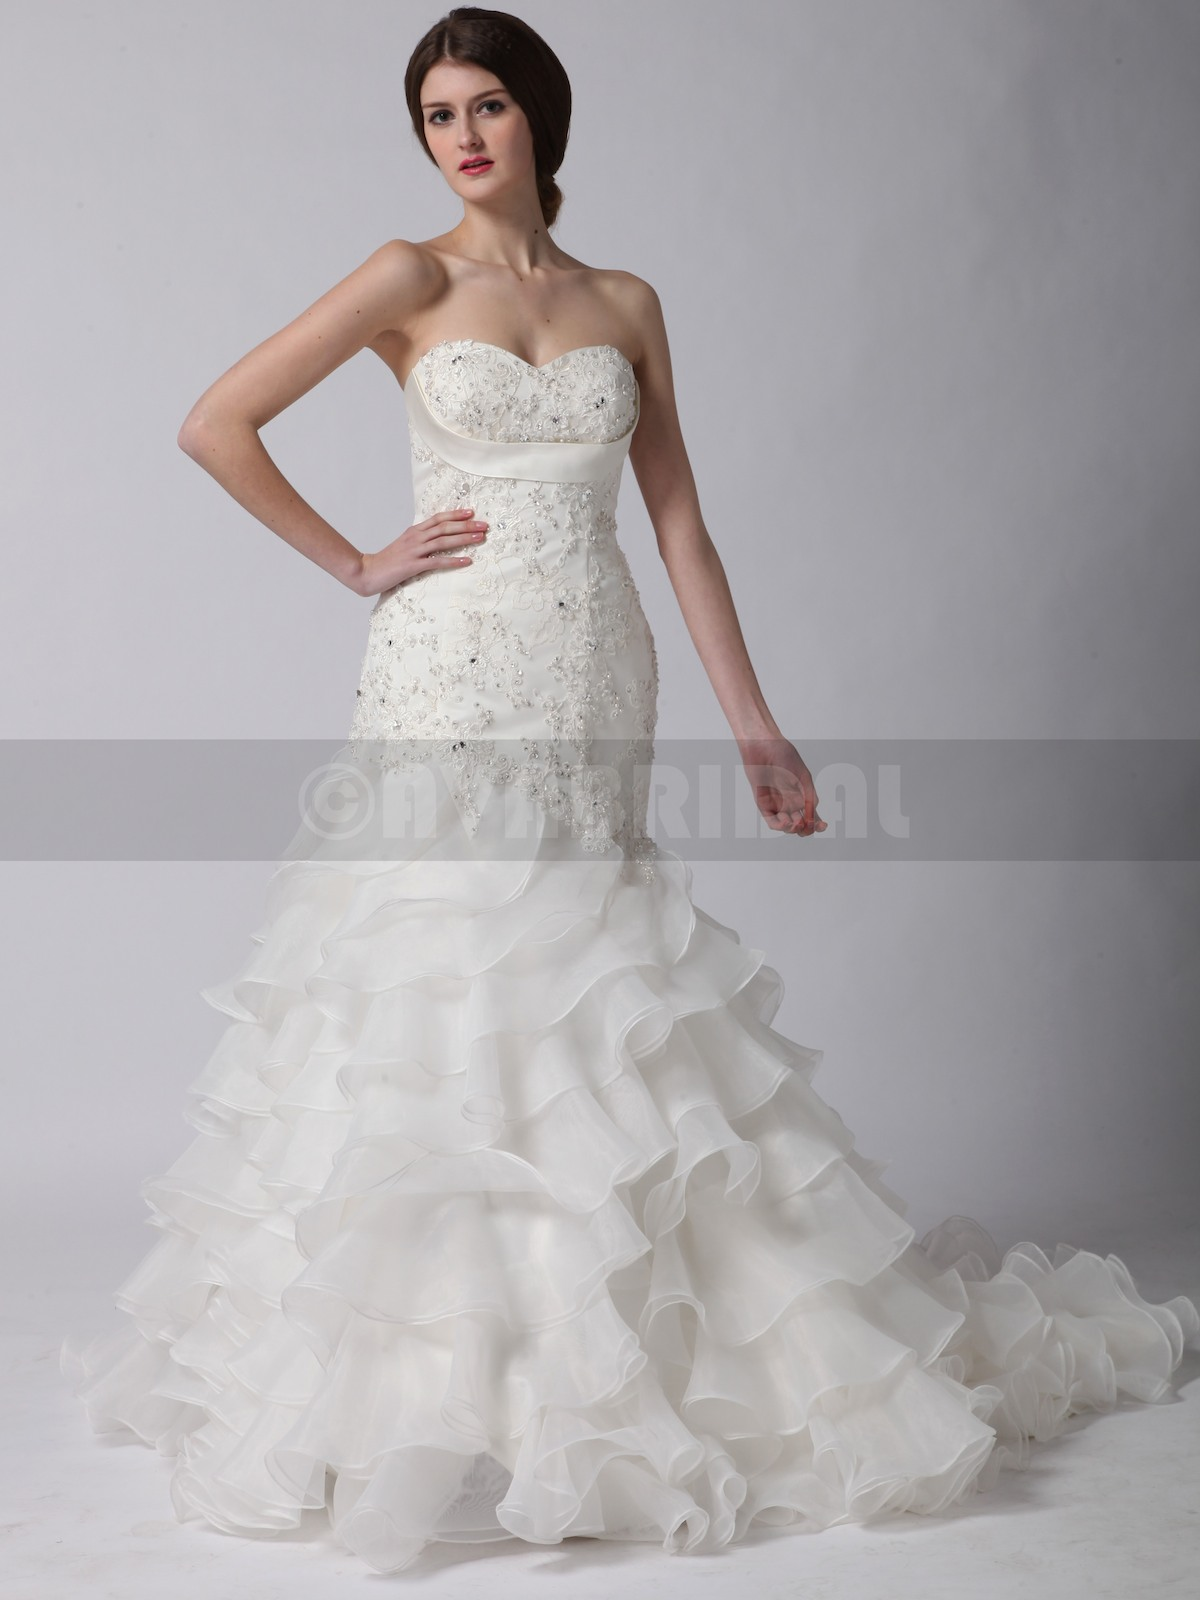 Elegant Wedding Dress - Maggie - Front